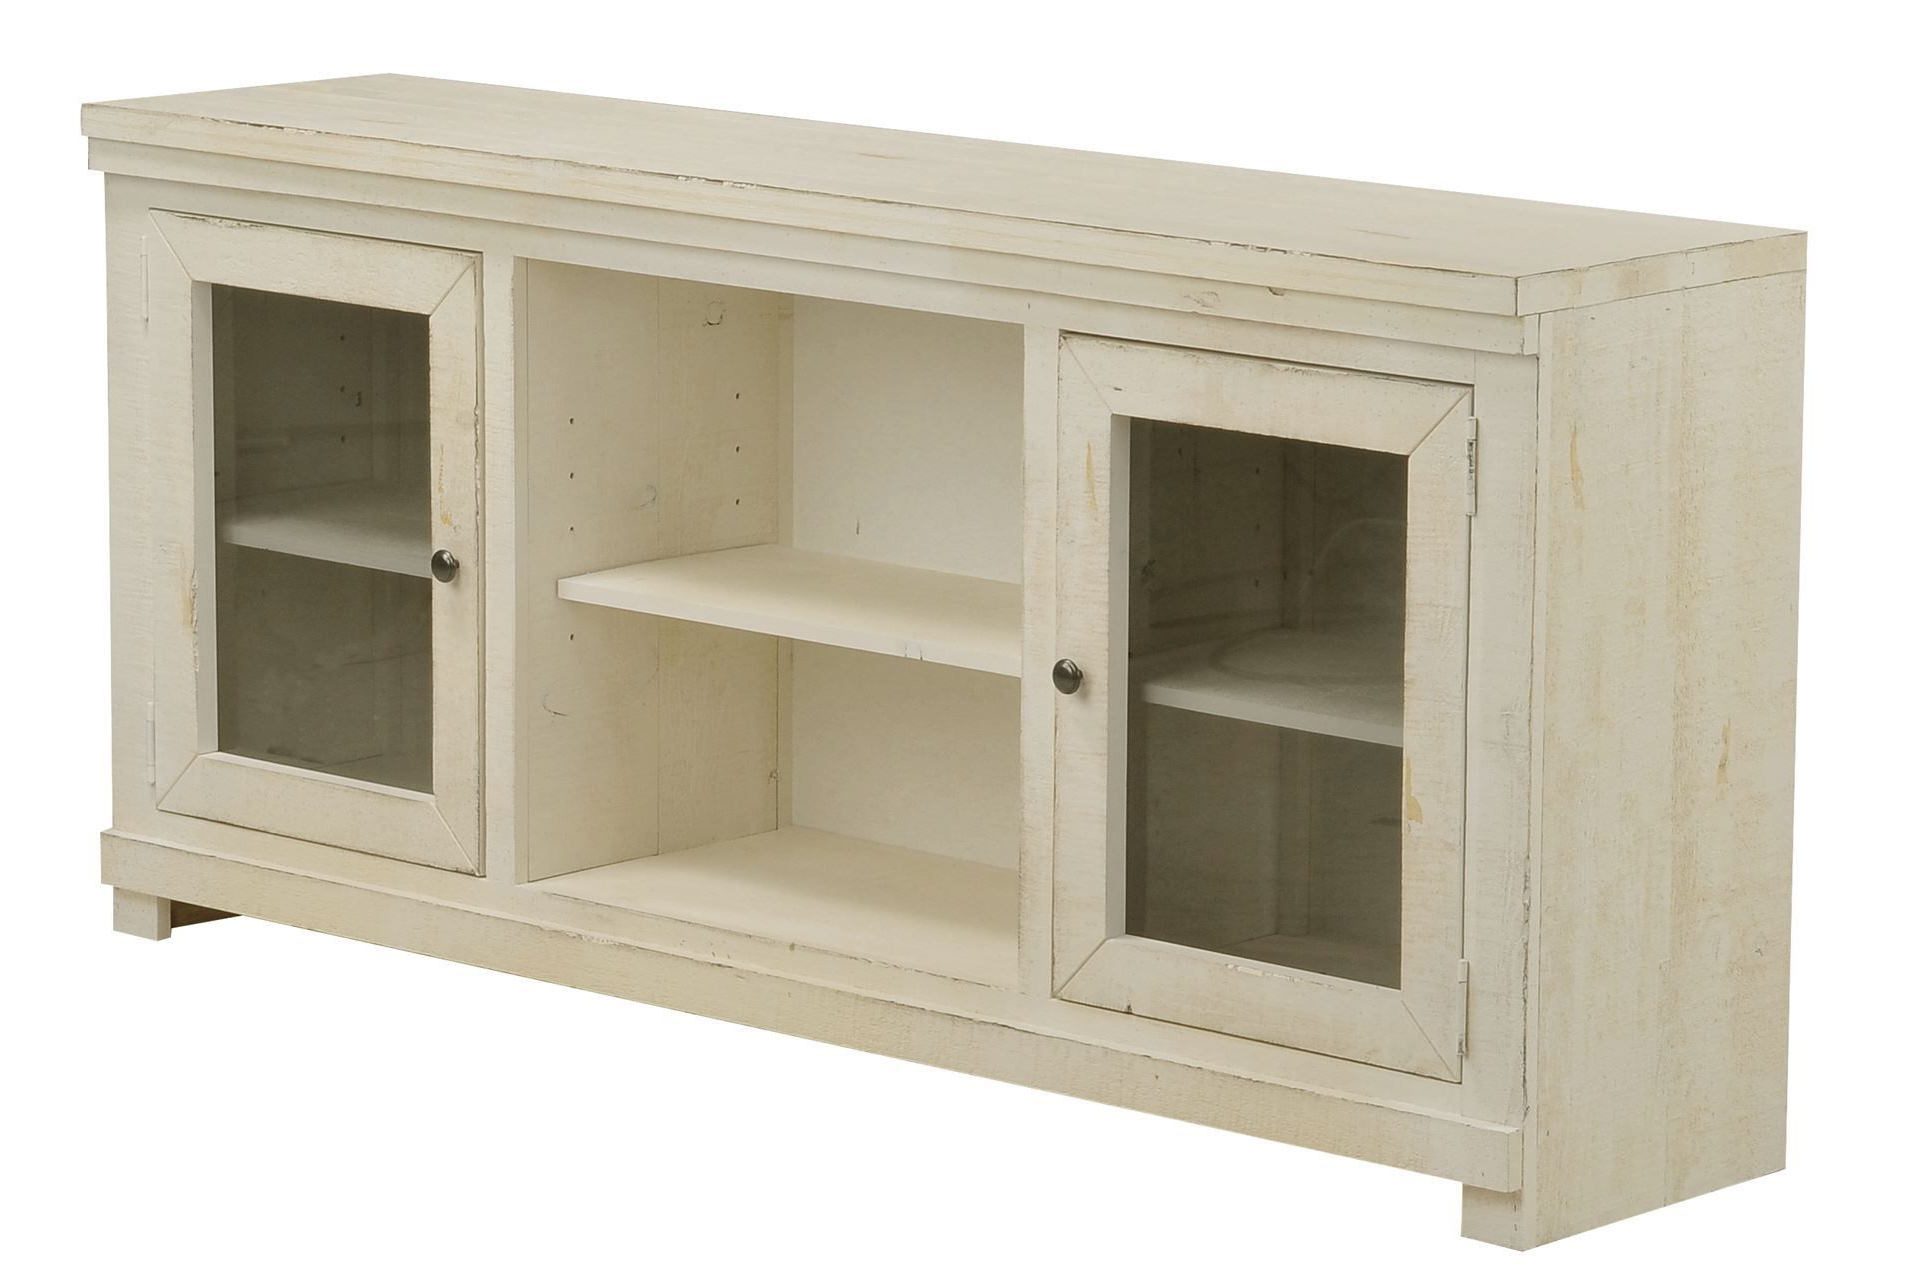 Sinclair White 68 Inch Tv Stand | For The Home | Living Room Designs With Sinclair White 64 Inch Tv Stands (View 16 of 20)